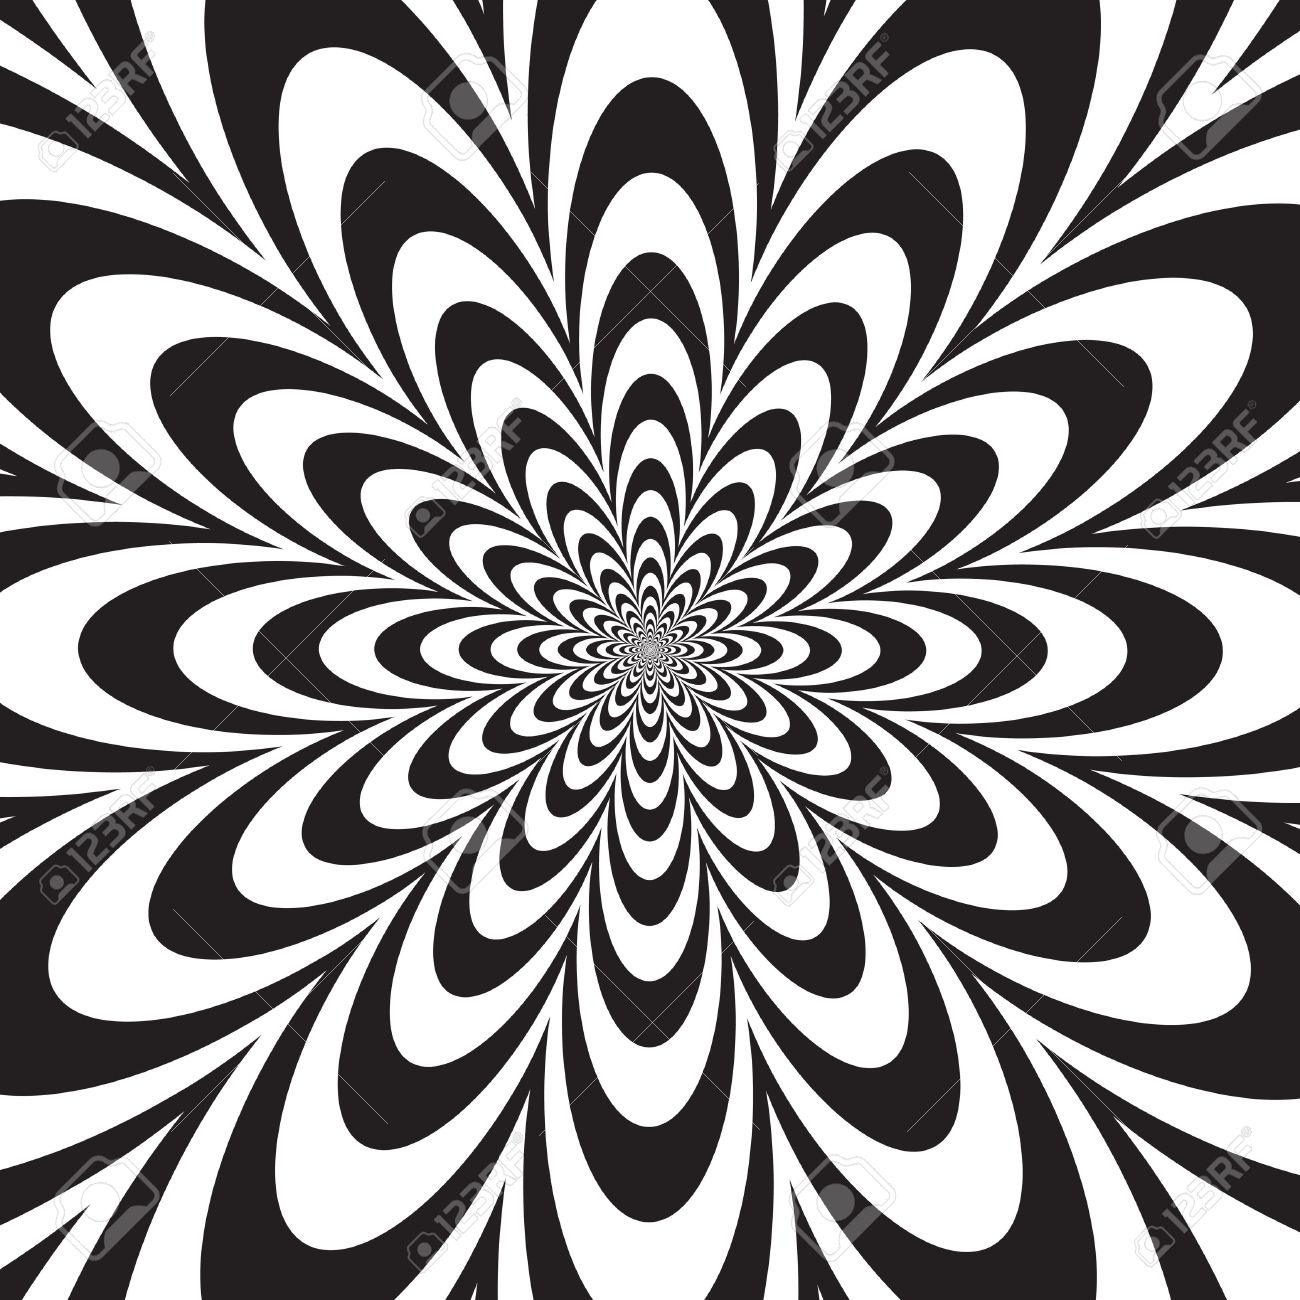 Infinite Flower Op Art Design In Black And White Royalty Free